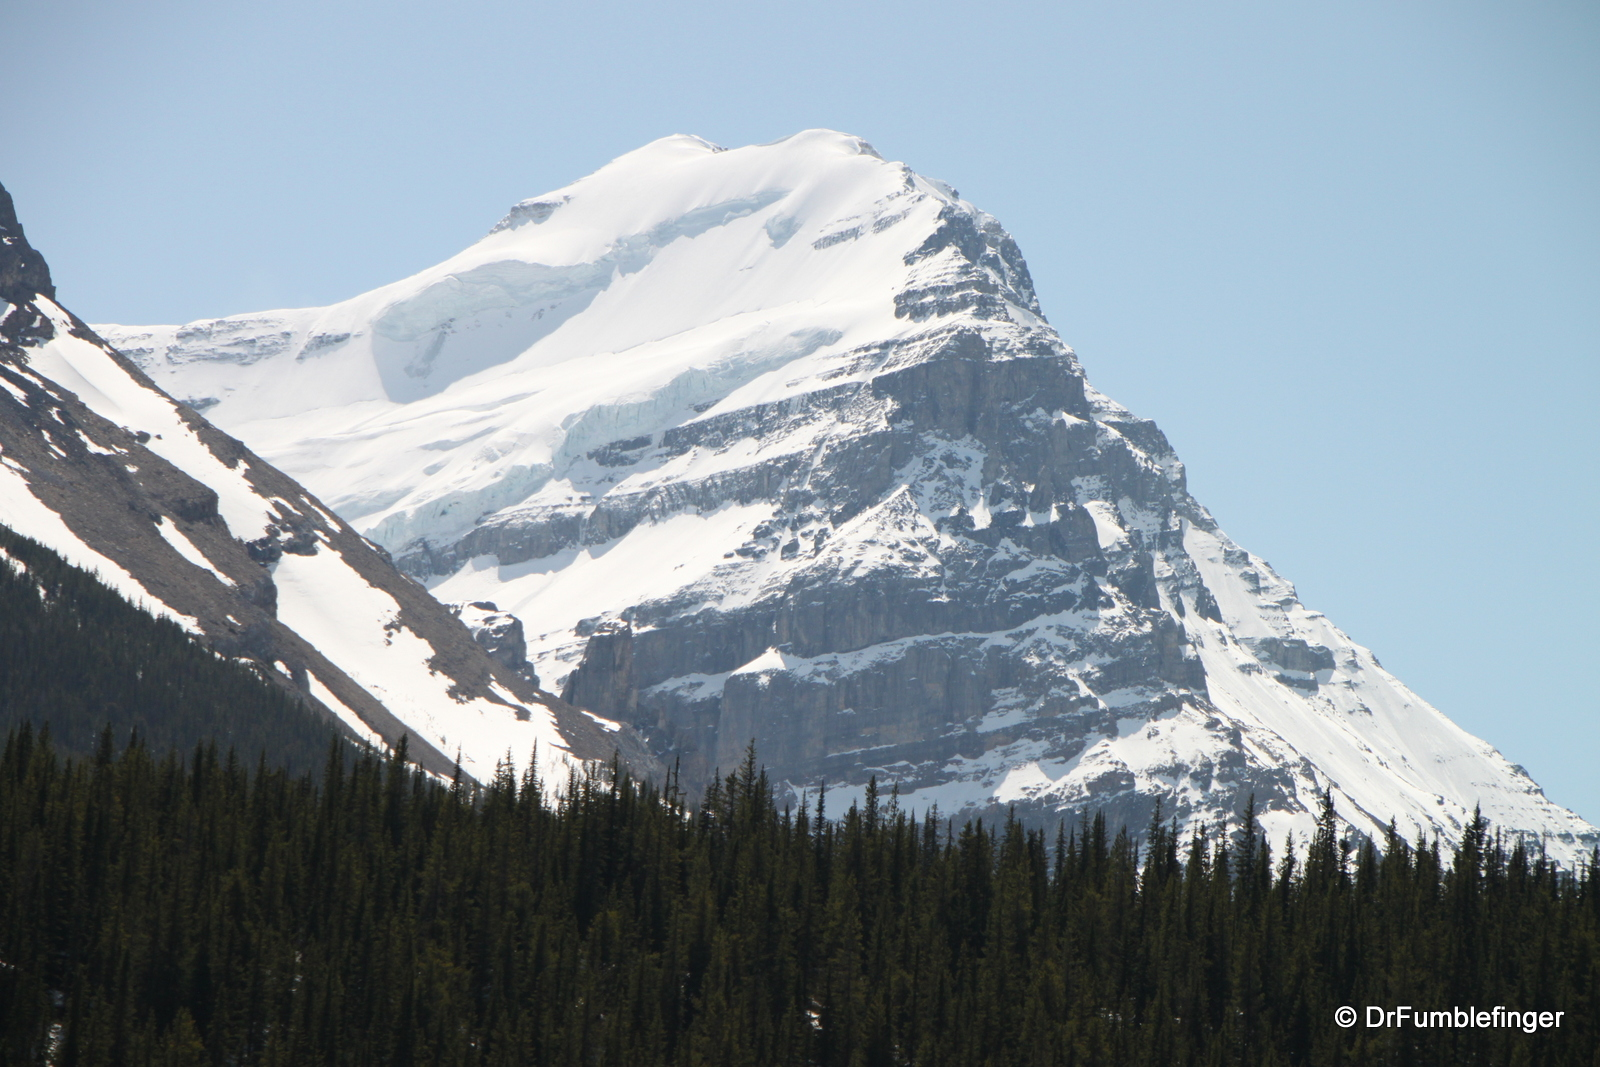 Mountain near Wapta Lake, Yoho National Park